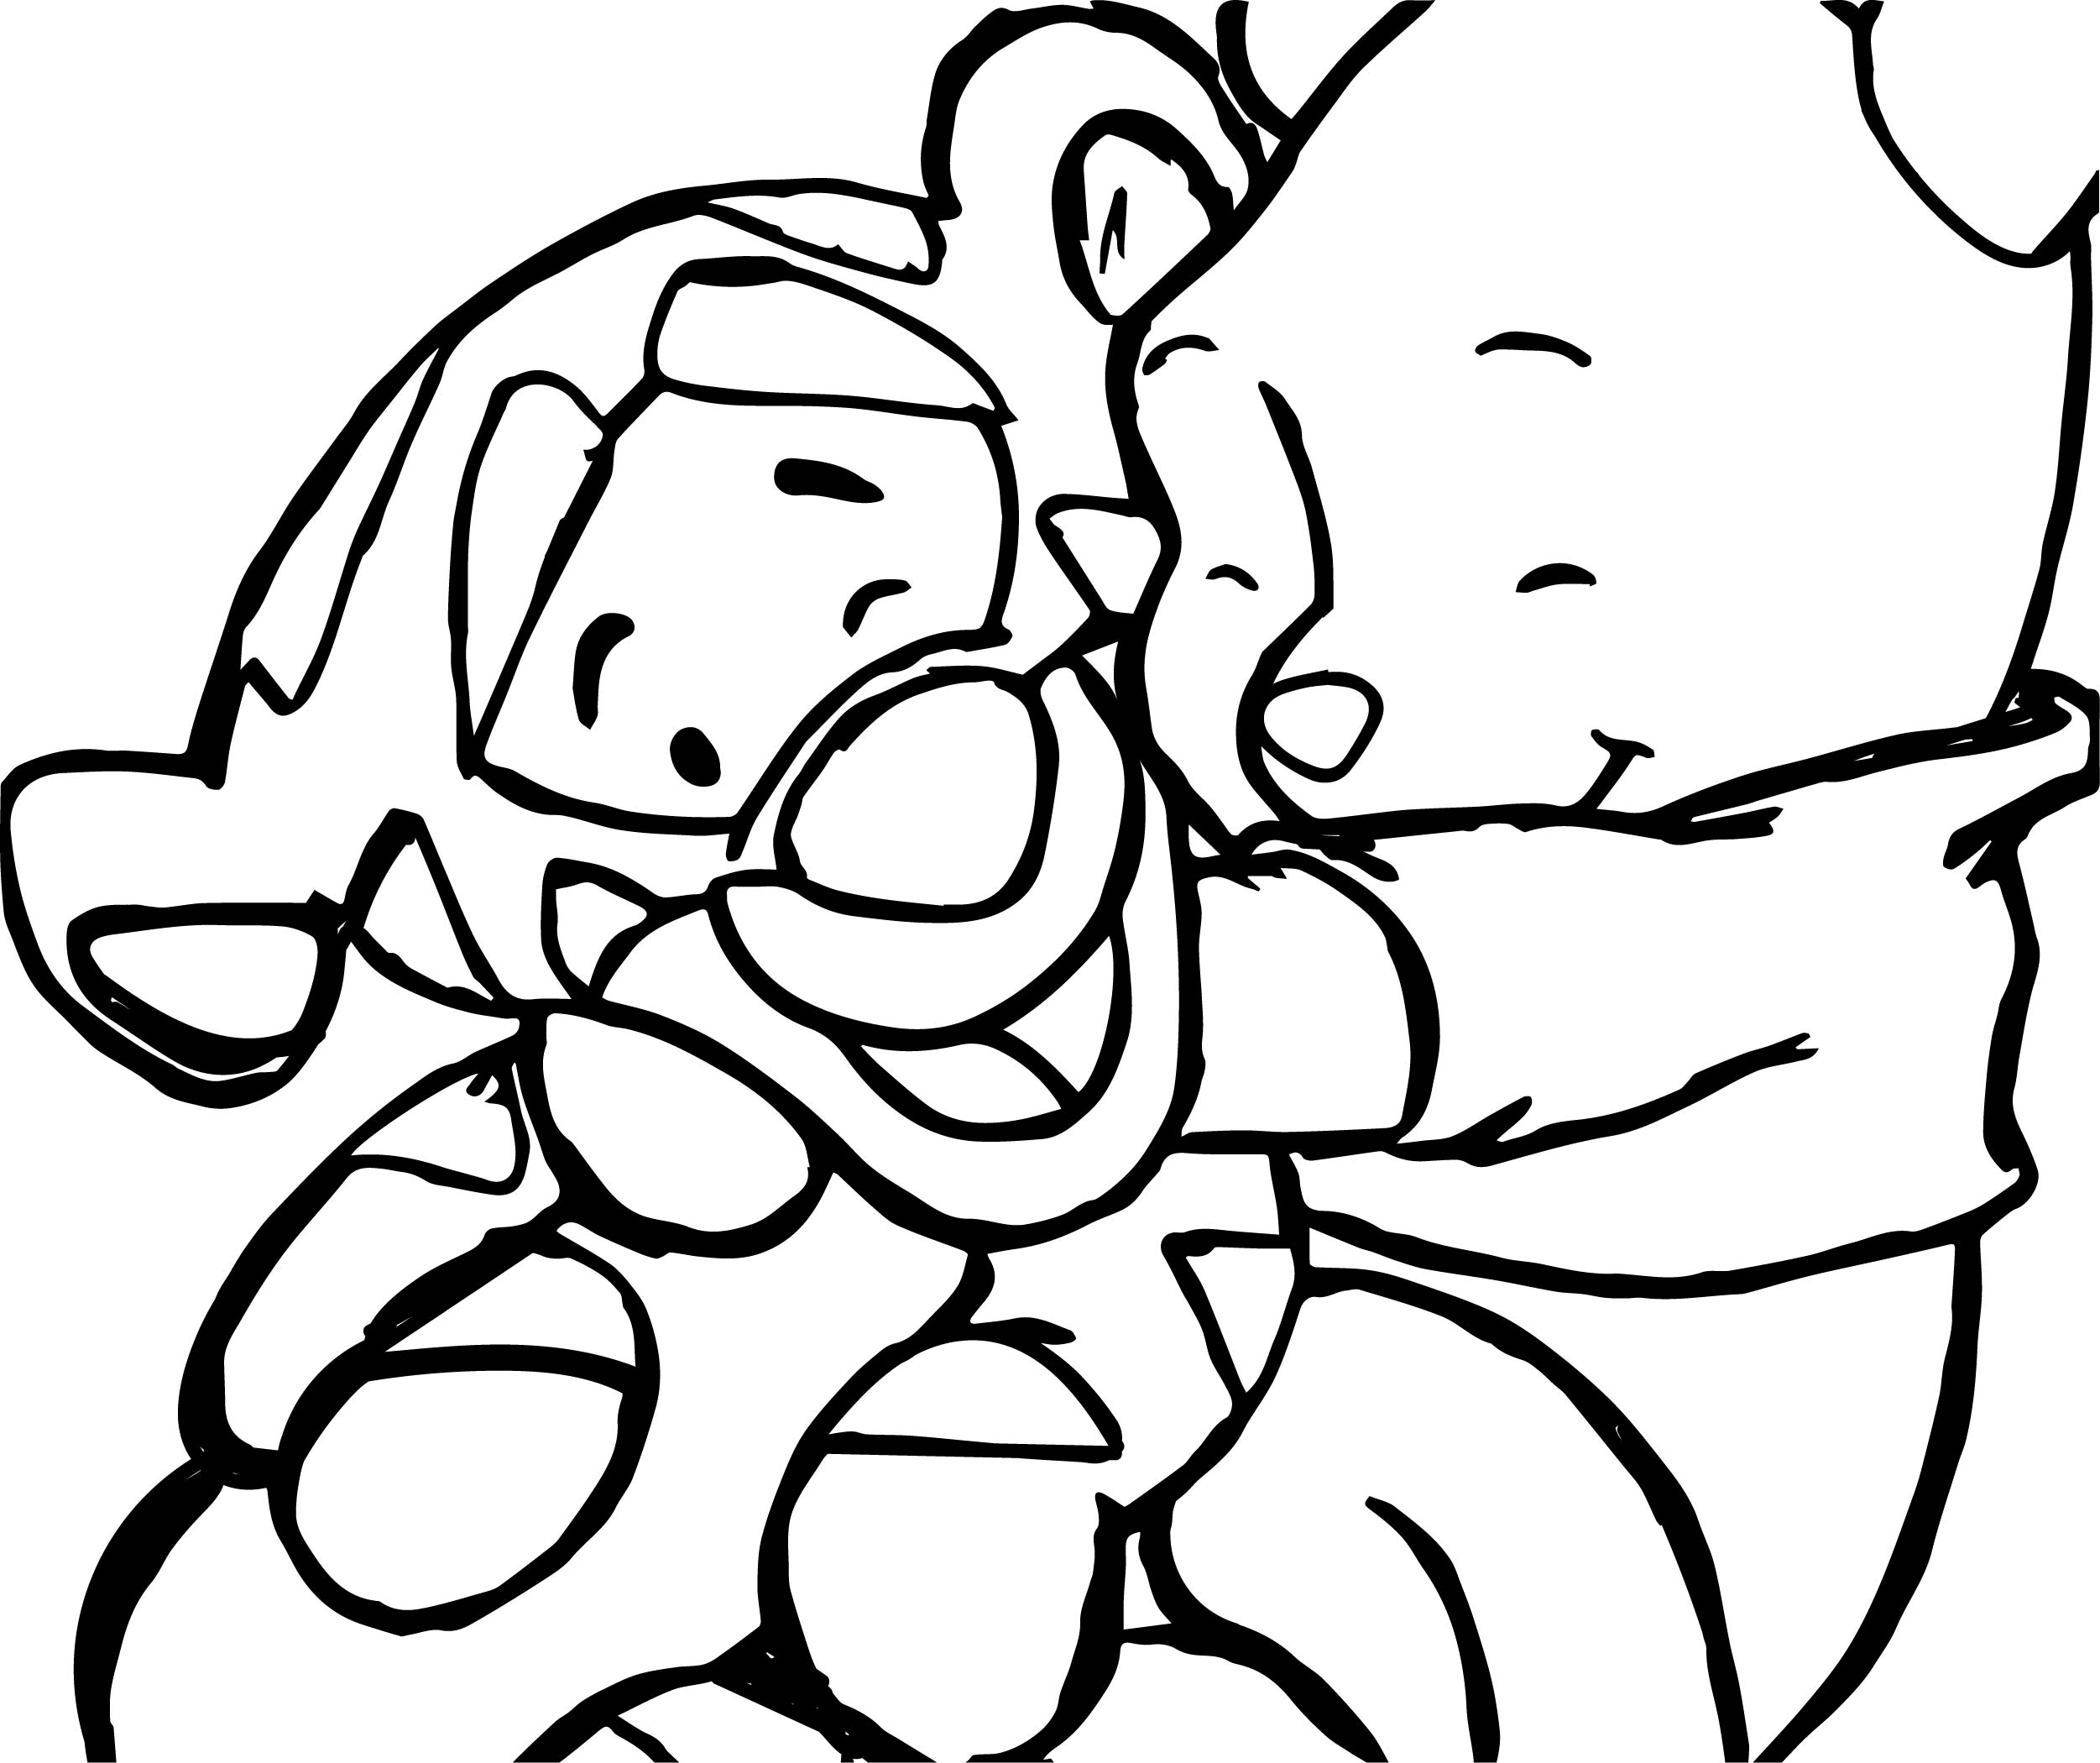 Baby tigger and pooh hug coloring page for Tigger and pooh coloring pages